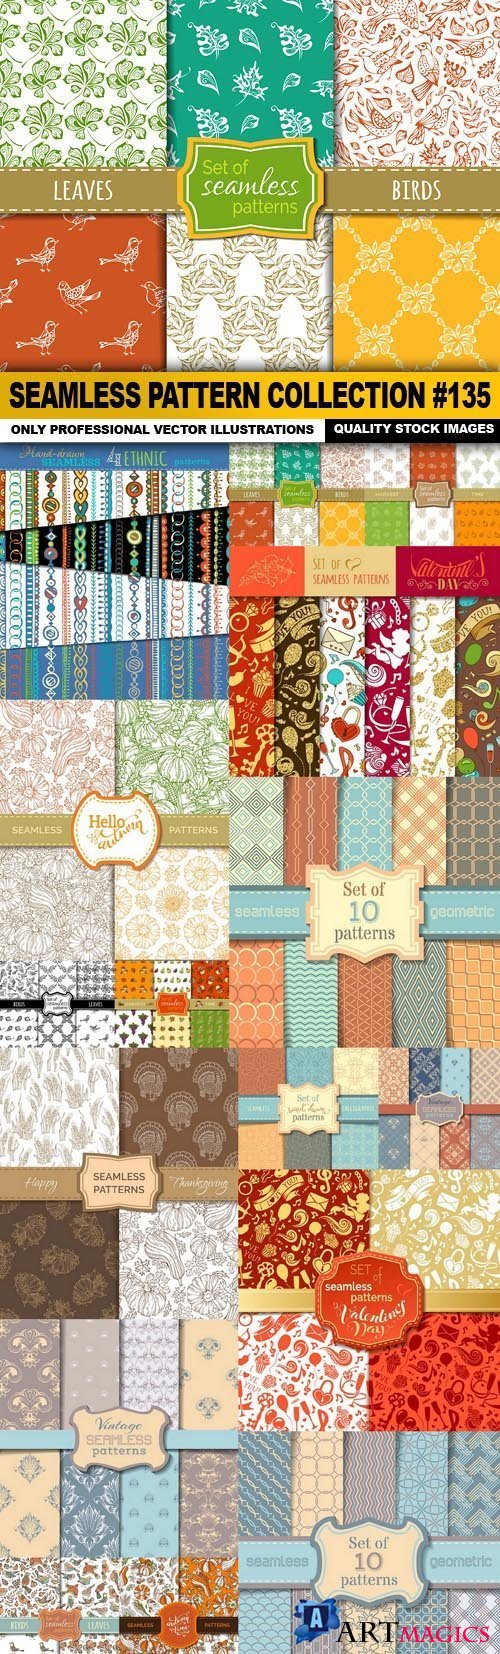 Seamless Pattern Collection #135 - 16 Vector